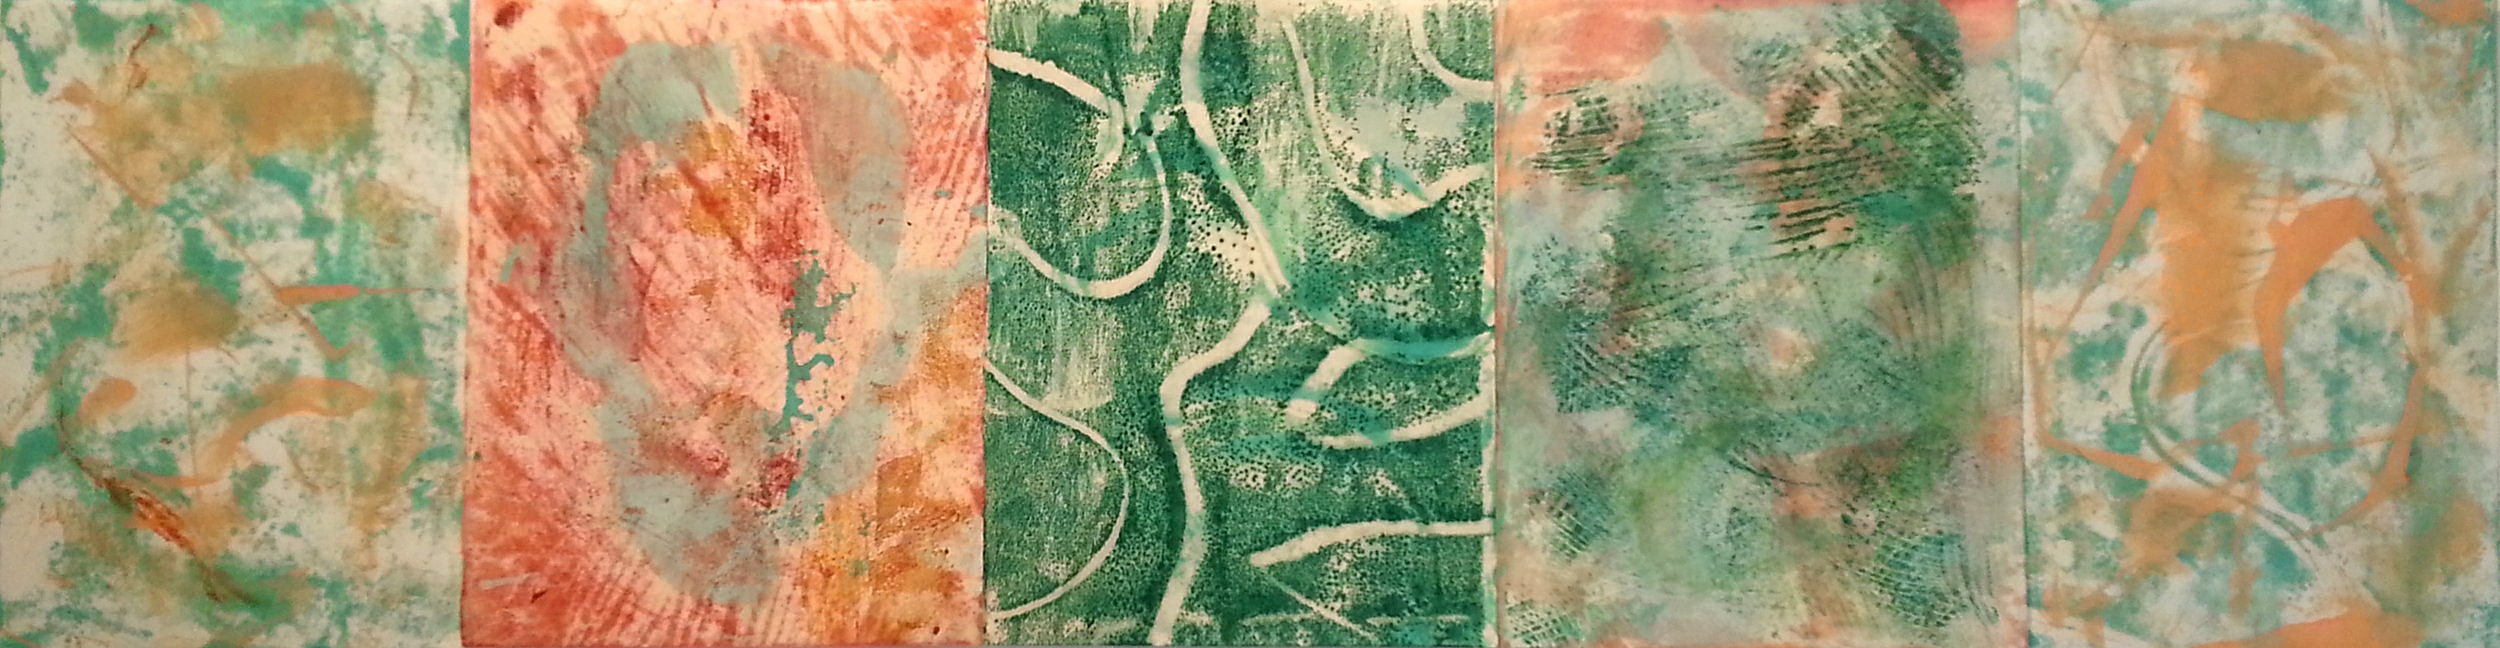 Joined Monotype #10, 2016, Encaustic monotype on various papers, thread, 7 x 26.5""